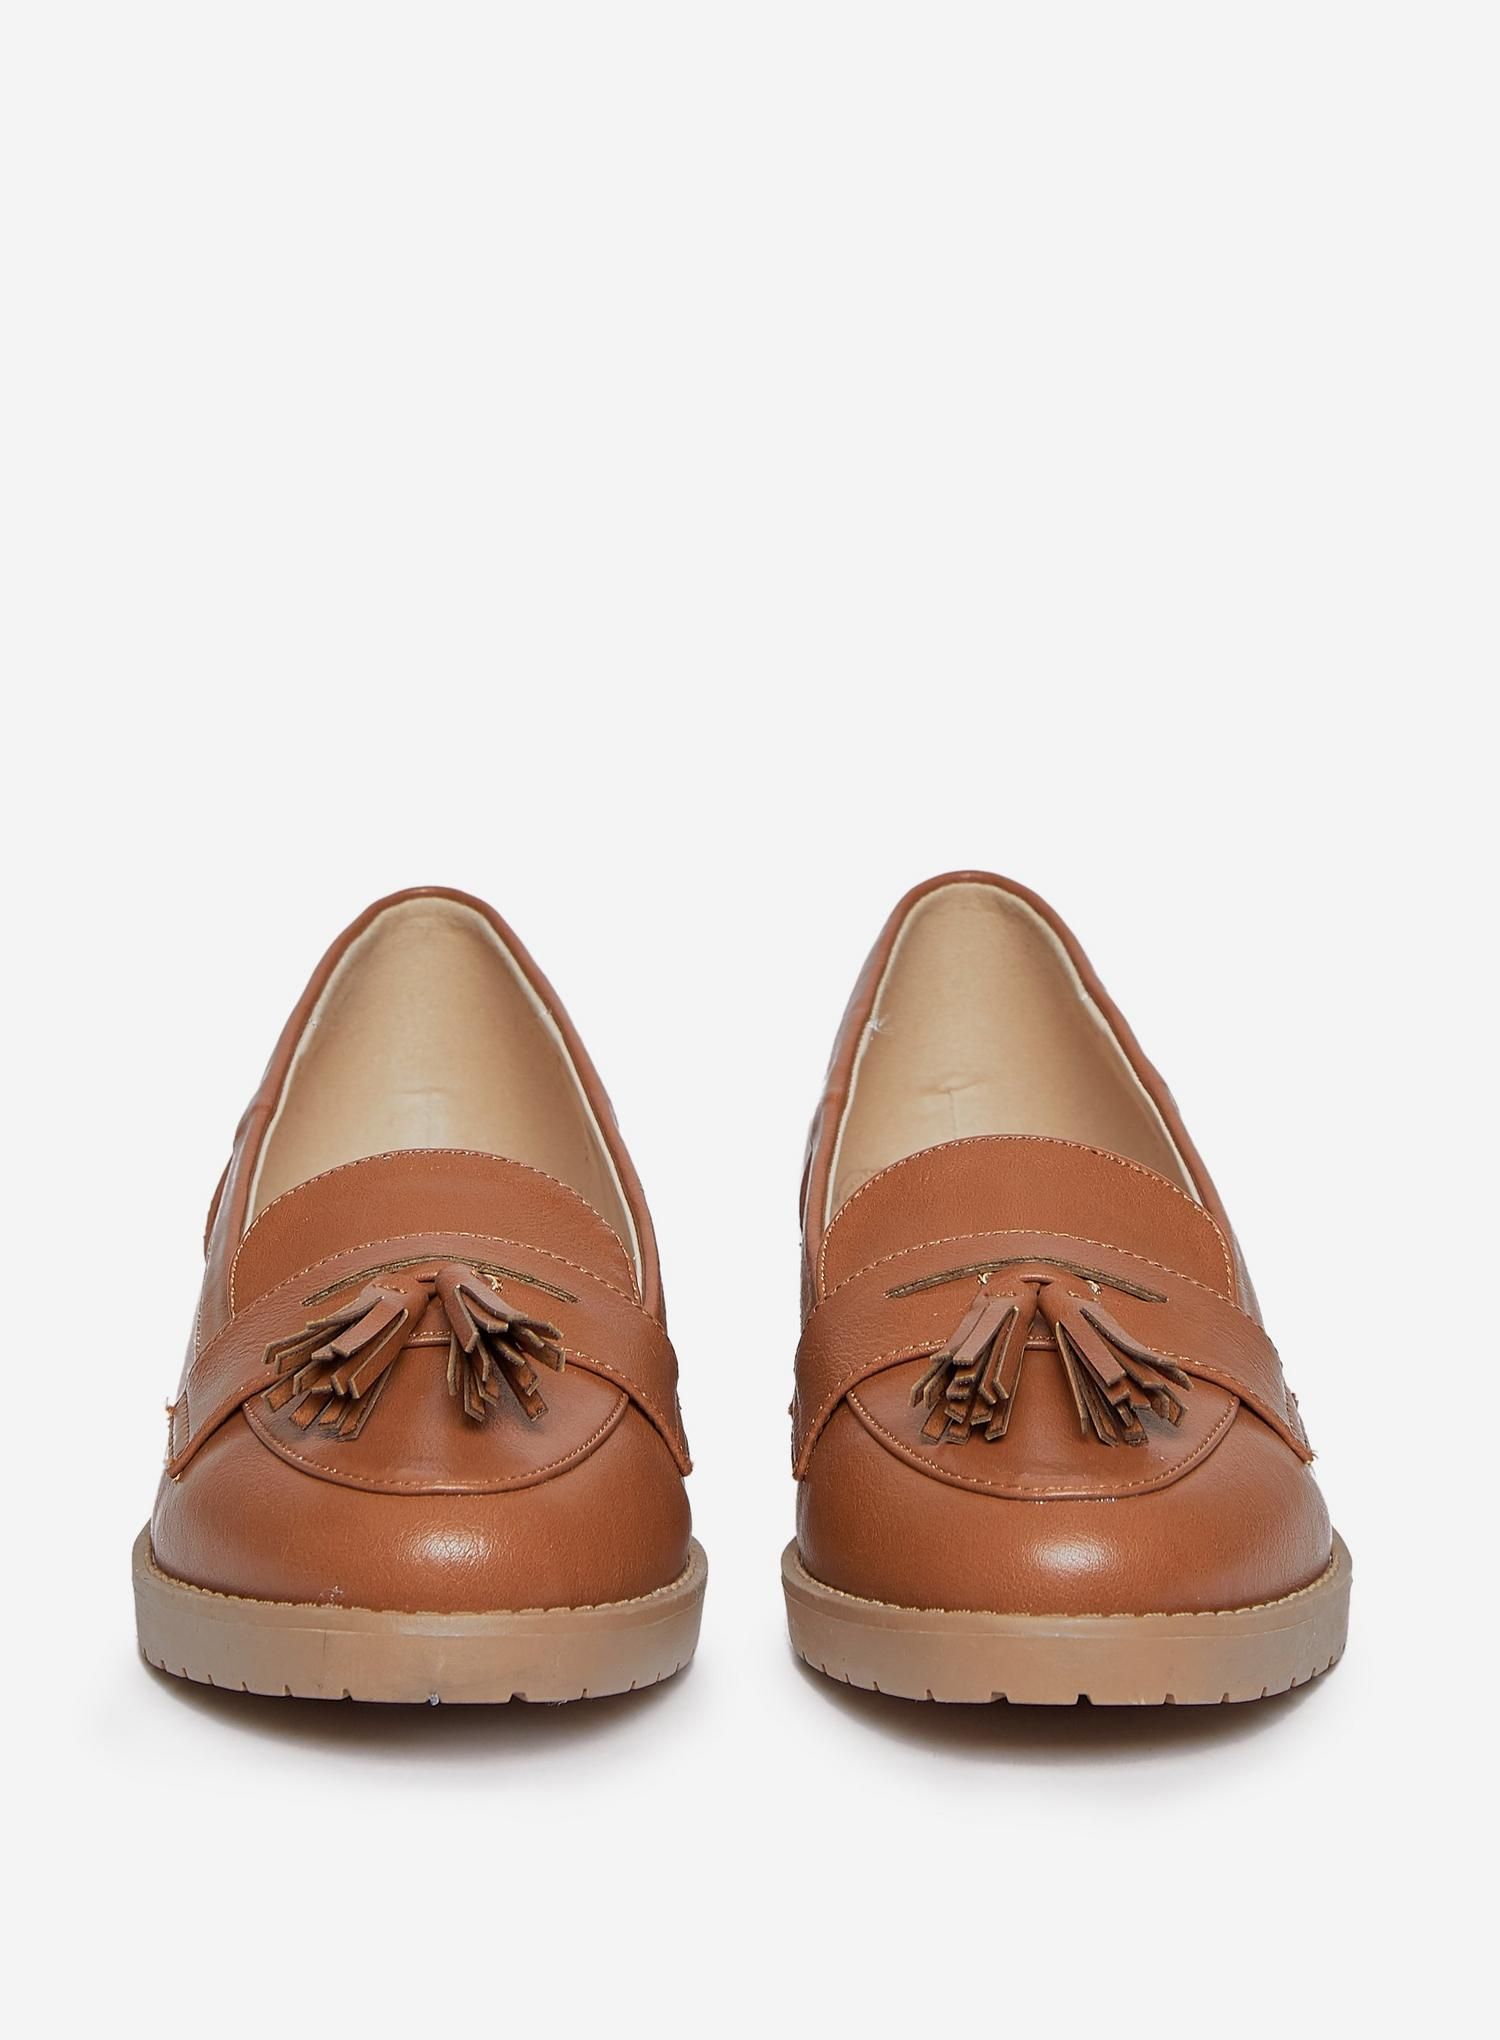 109 Wide Fit Tan Litty Loafers image number 3